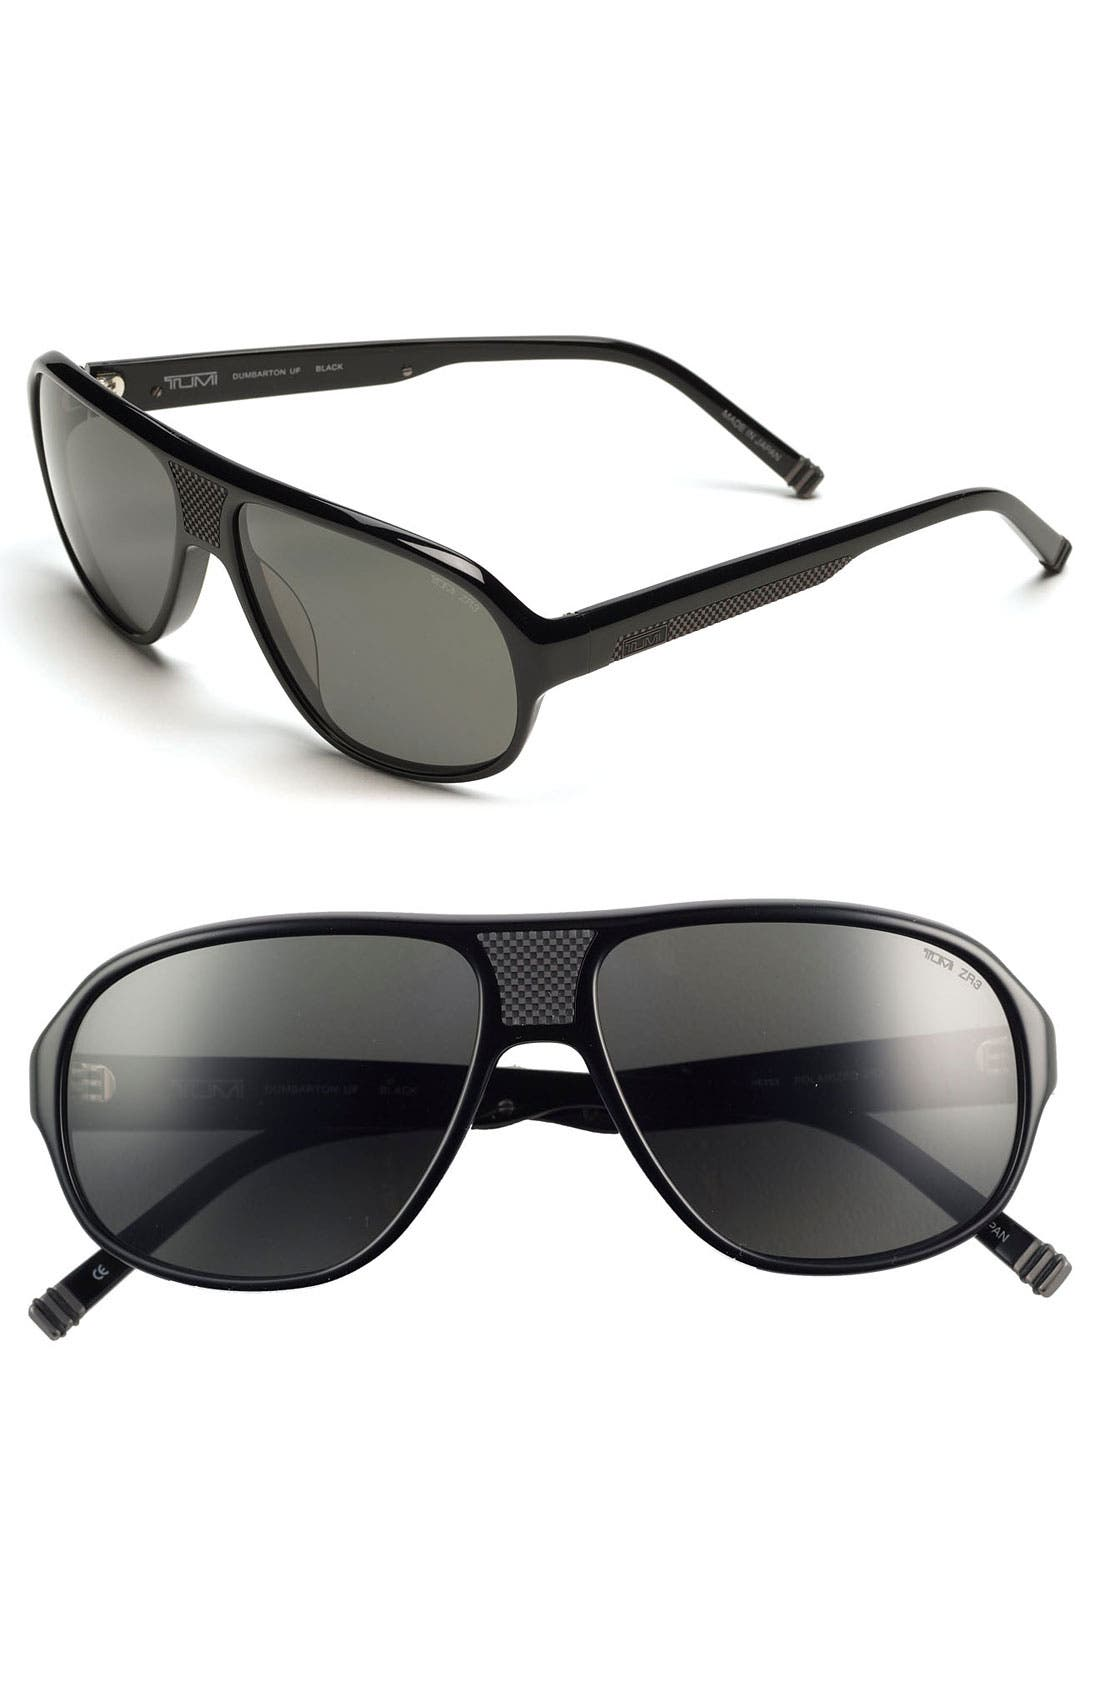 Main Image - Tumi 'Dumbarton' 59mm Sunglasses